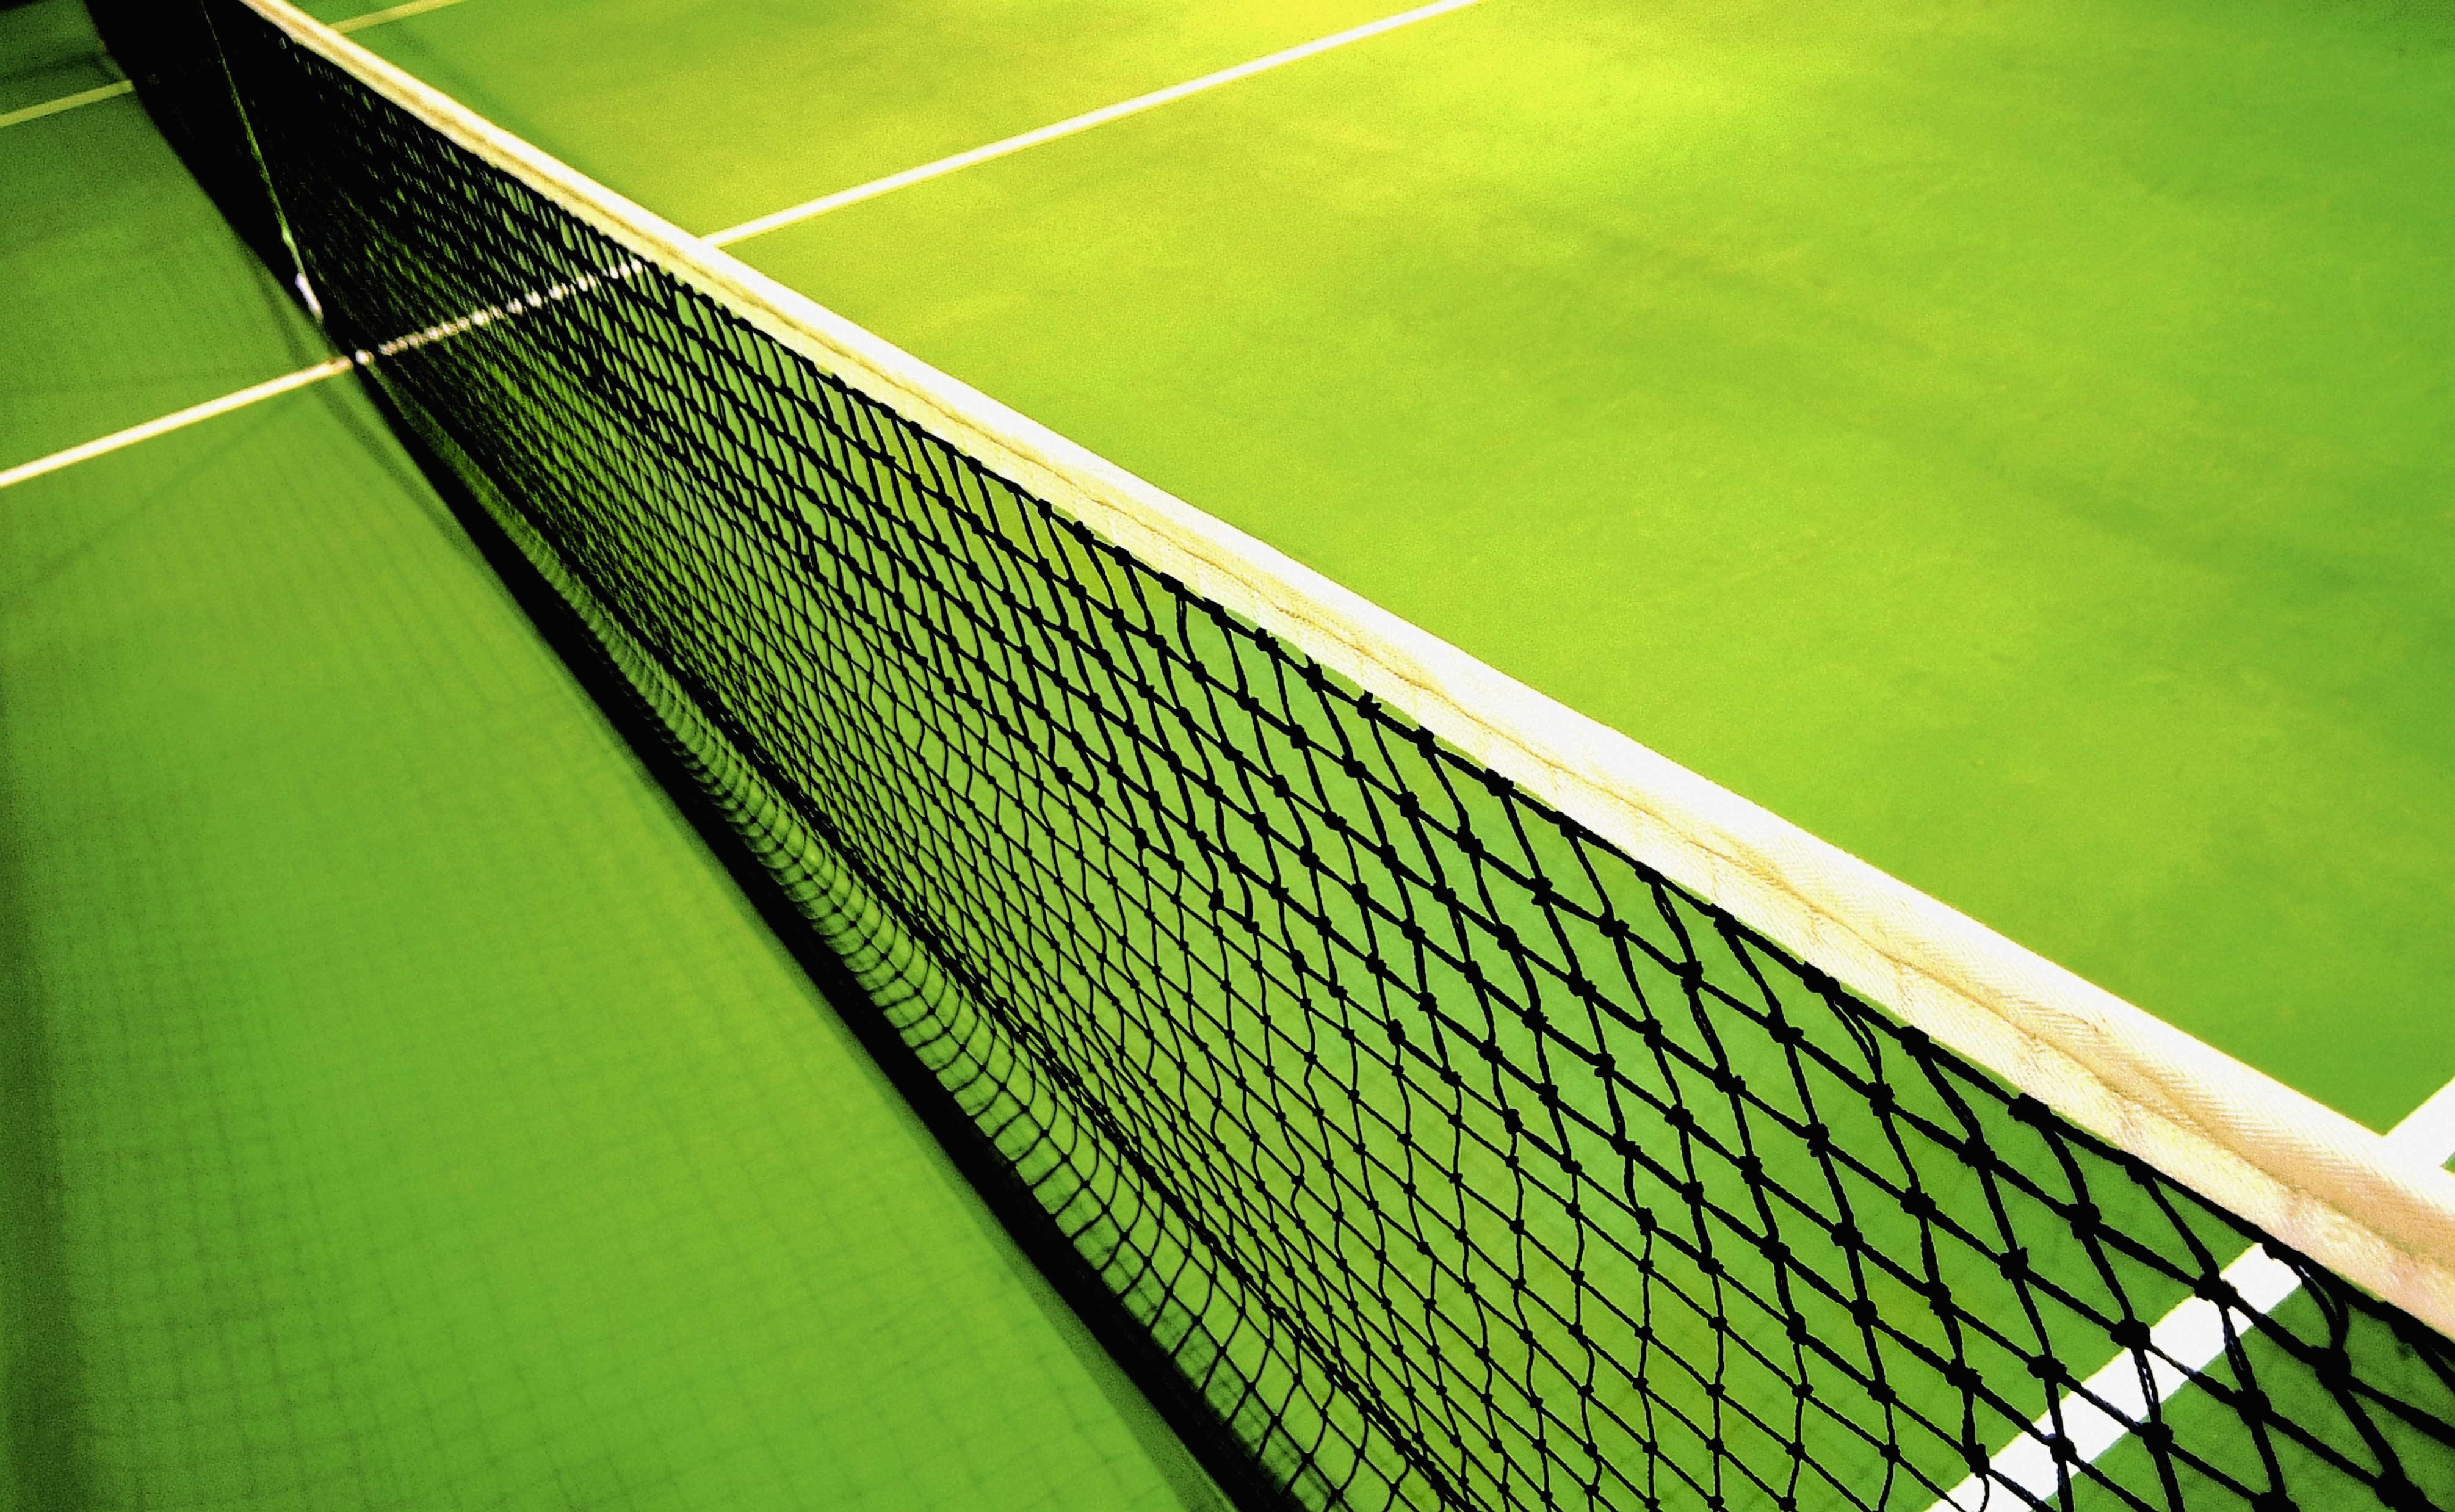 Tennis Court Wallpaper Images &amp Pictures  Becuo